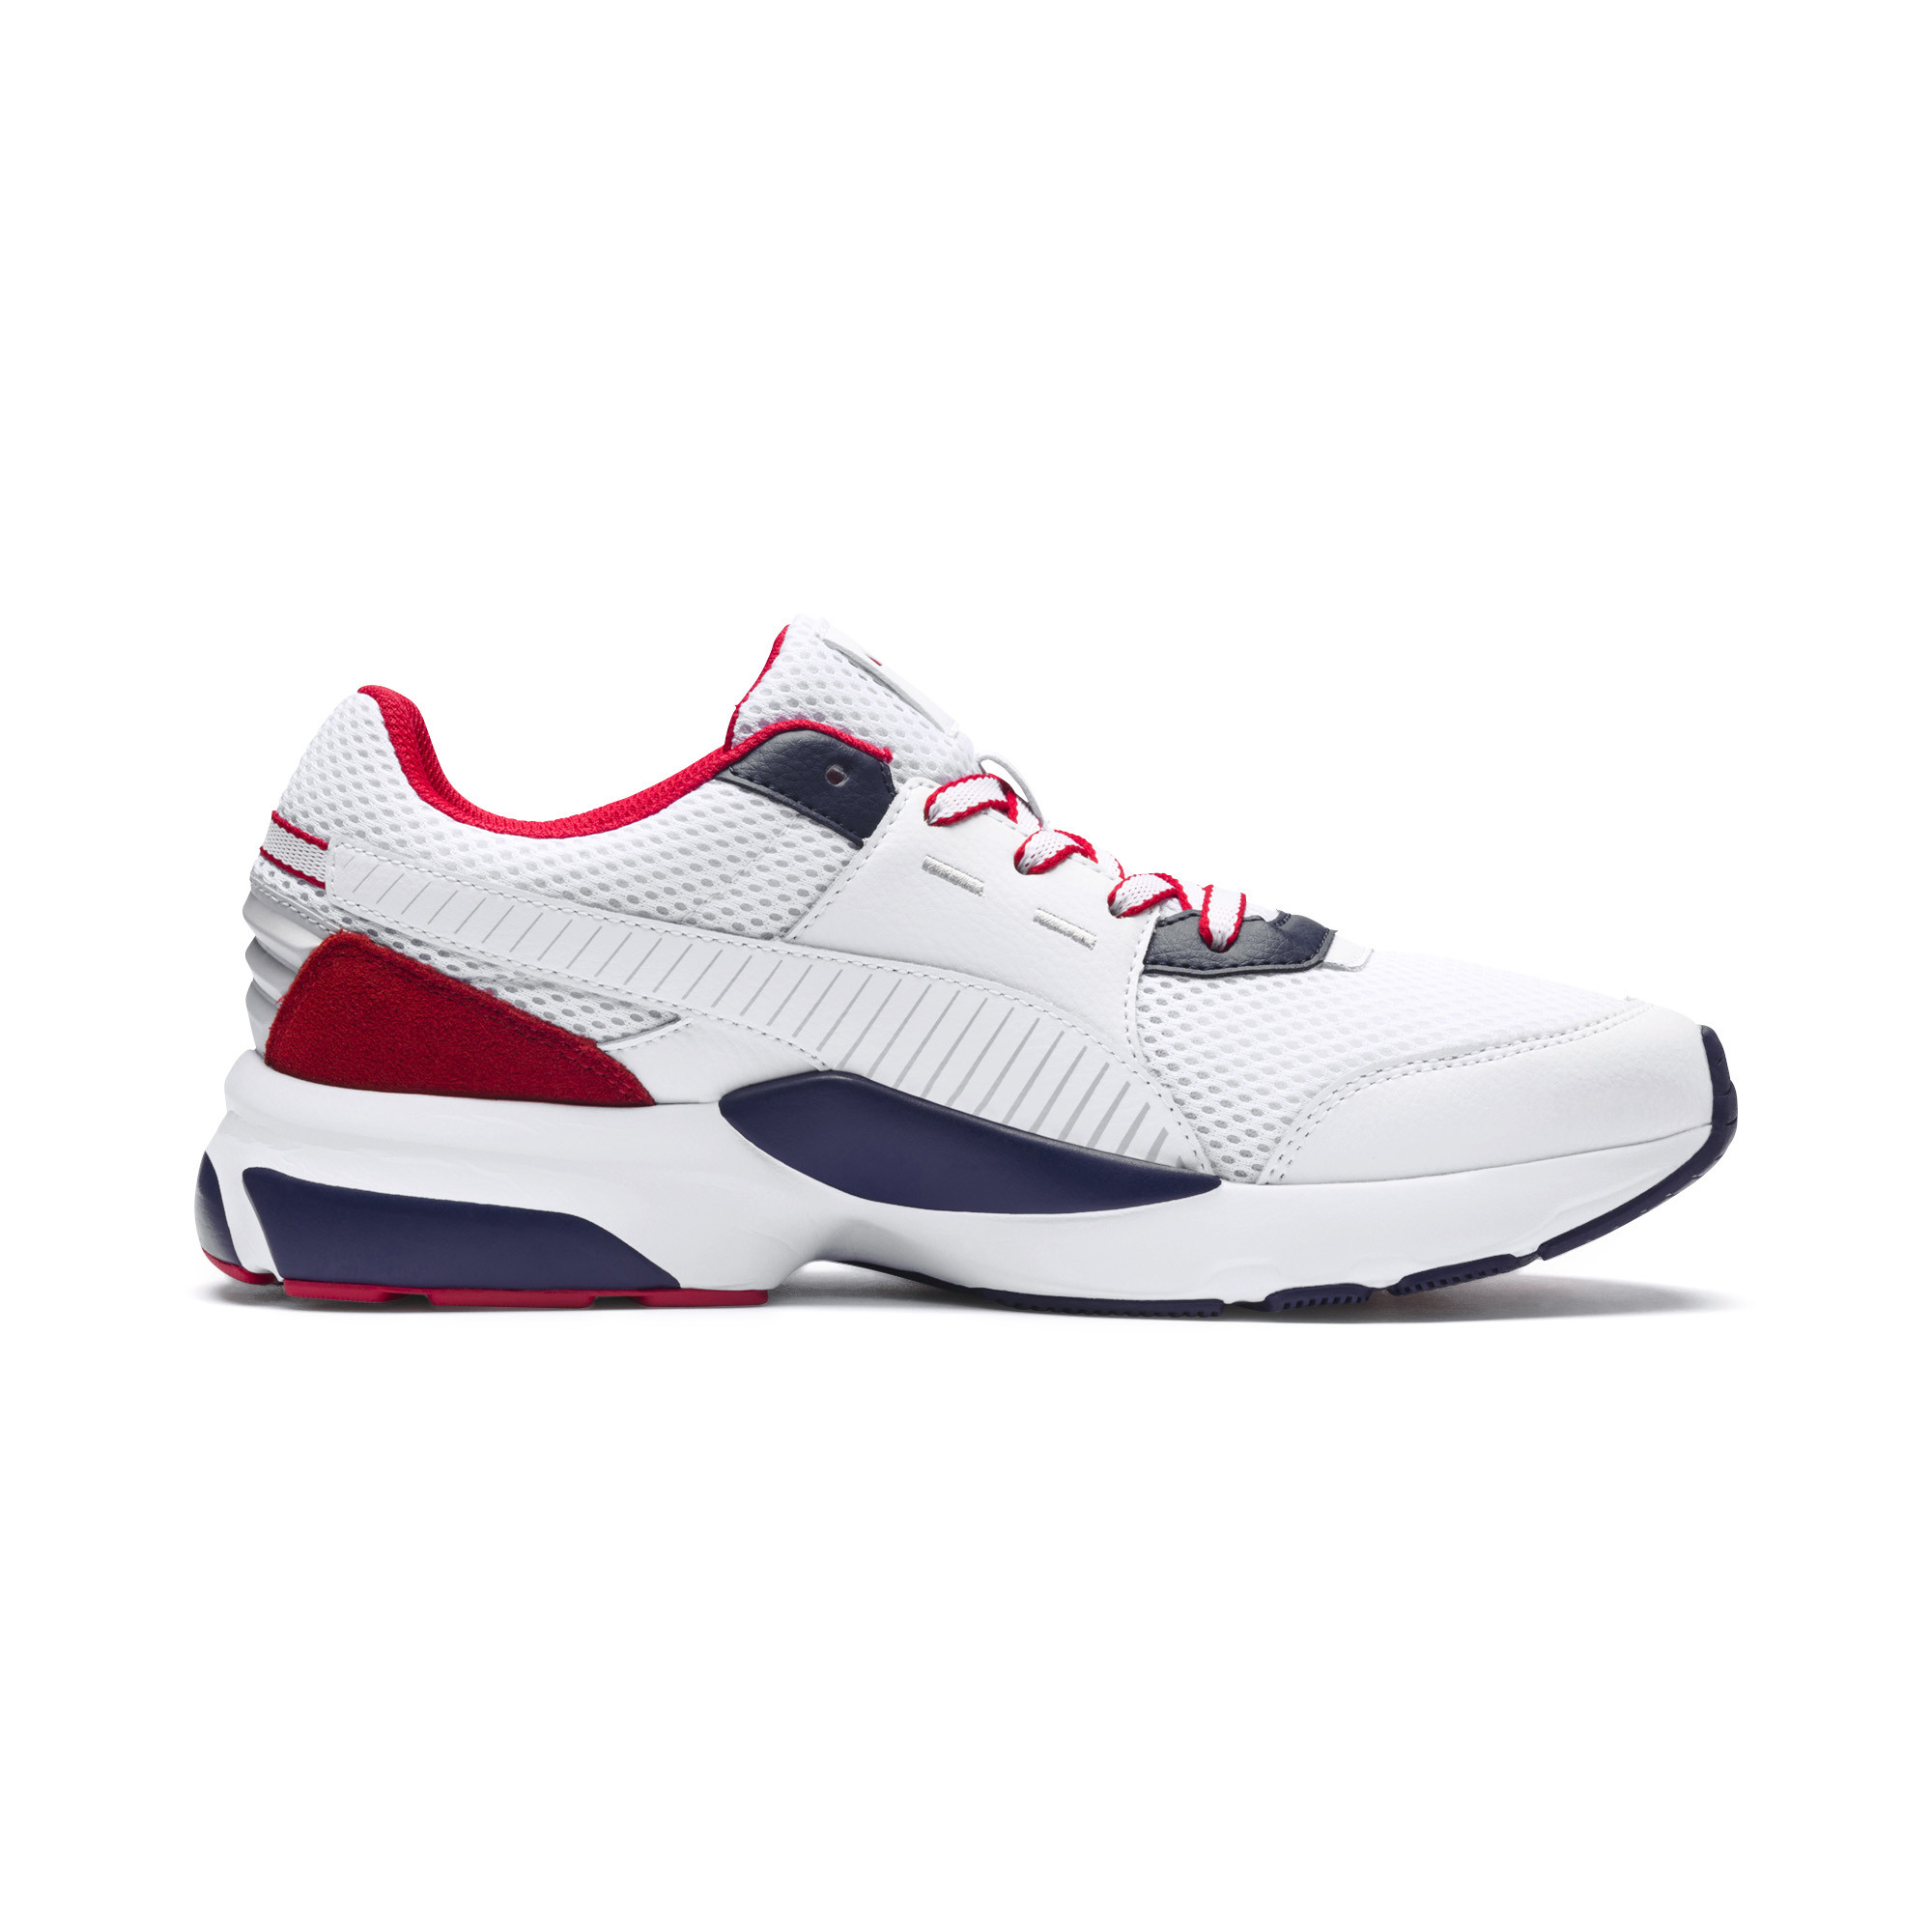 PUMA-Future-Runner-Premium-Men-039-s-Running-Shoes-Men-Shoe-Basics thumbnail 6